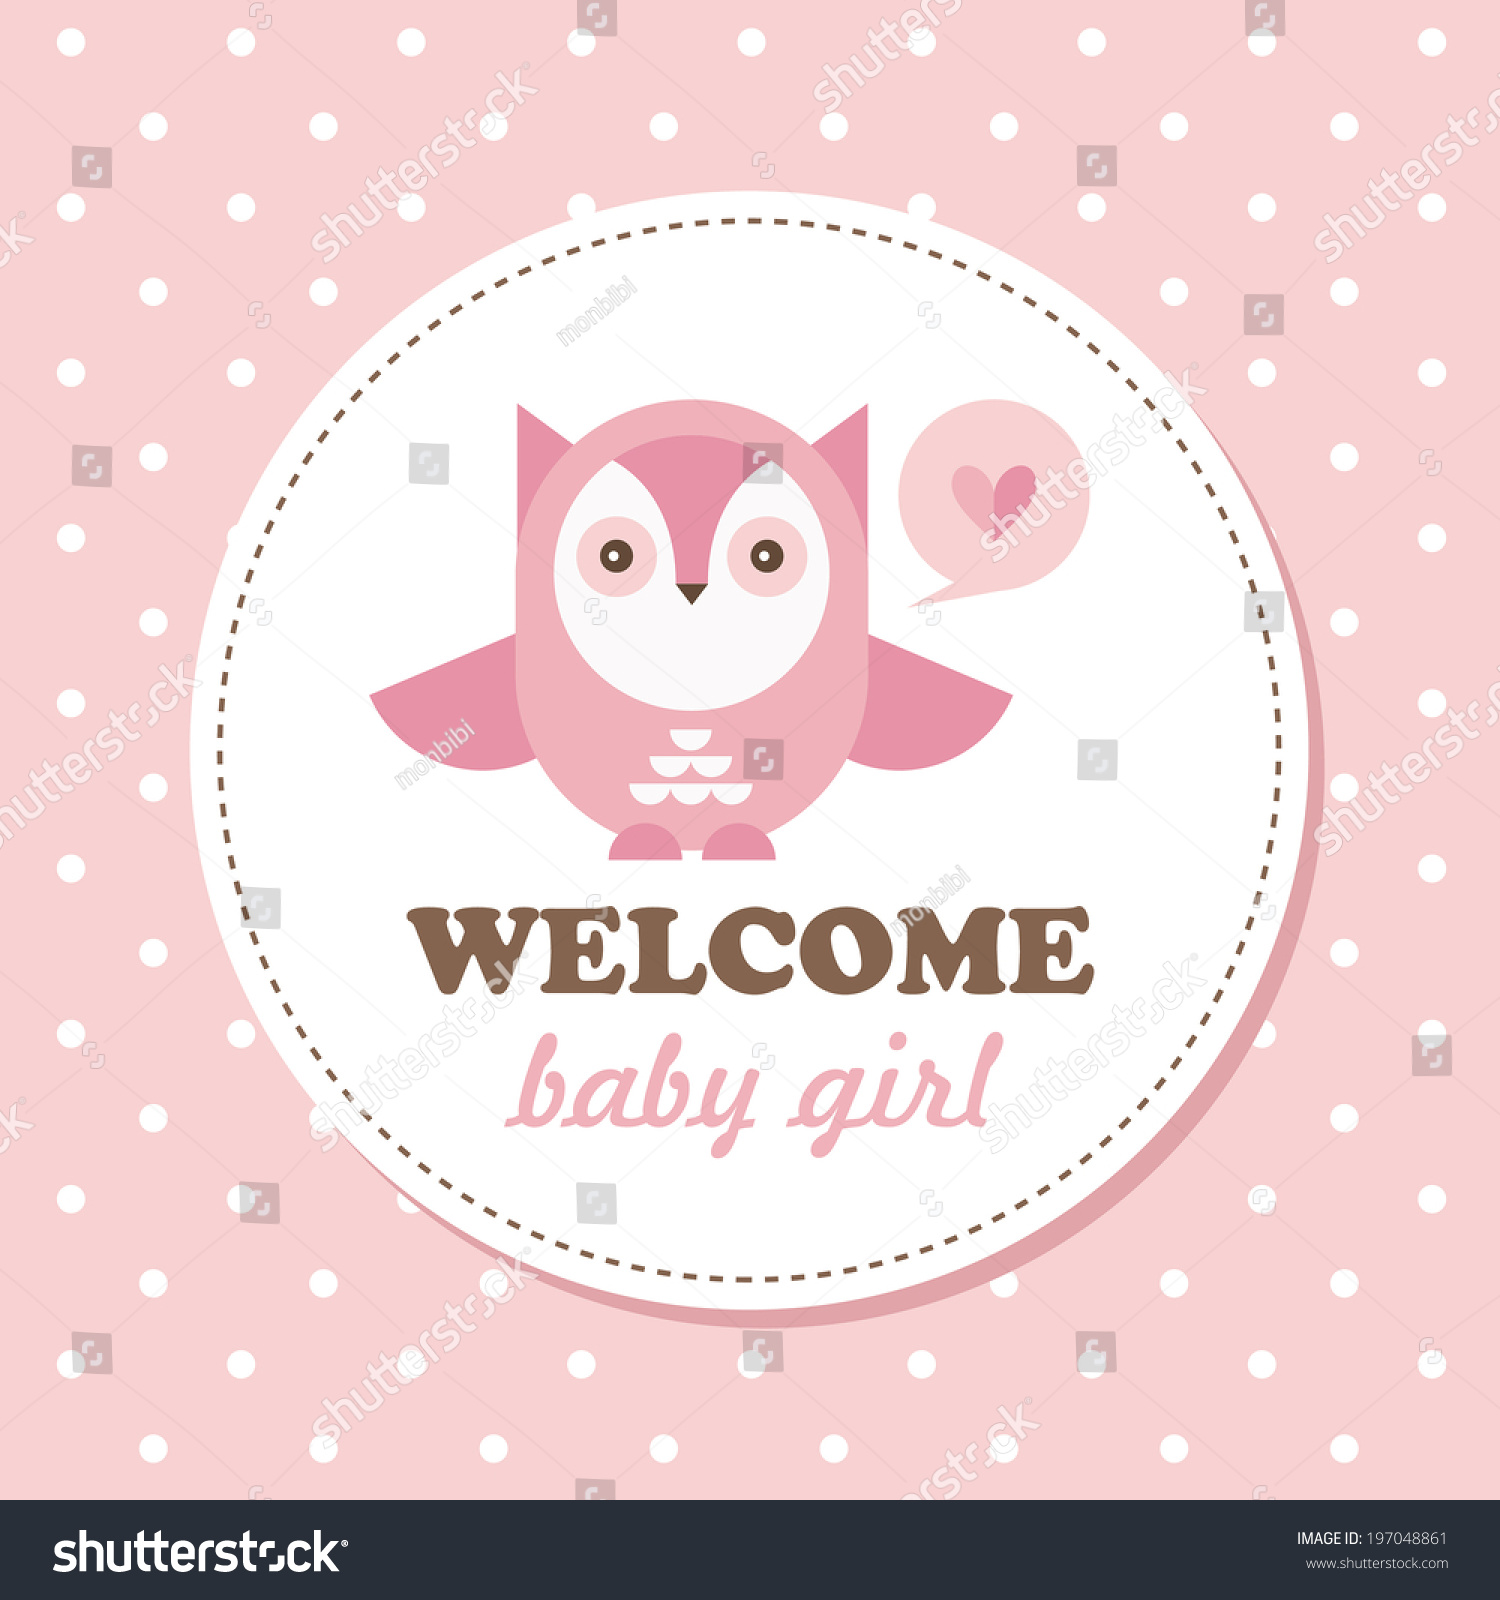 Welcome Baby Card Vector Illustration Stock Vector 197048861 ...